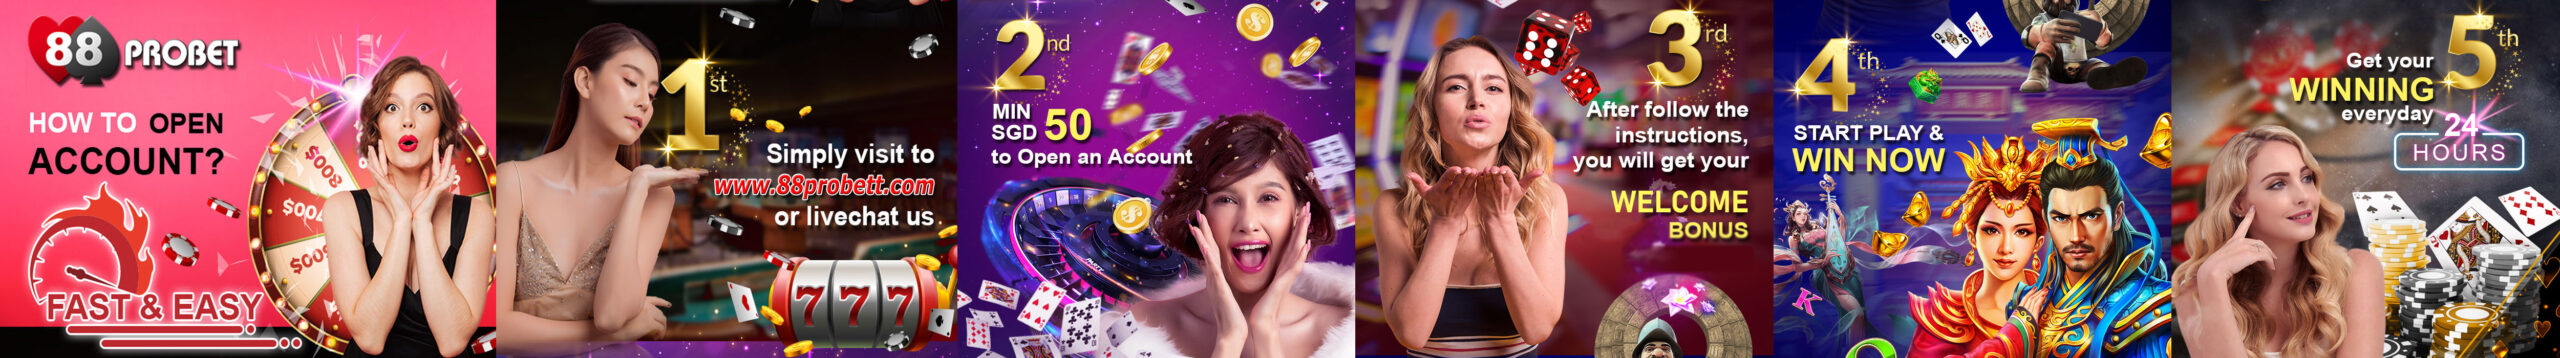 How to Open an Account in 88Probet